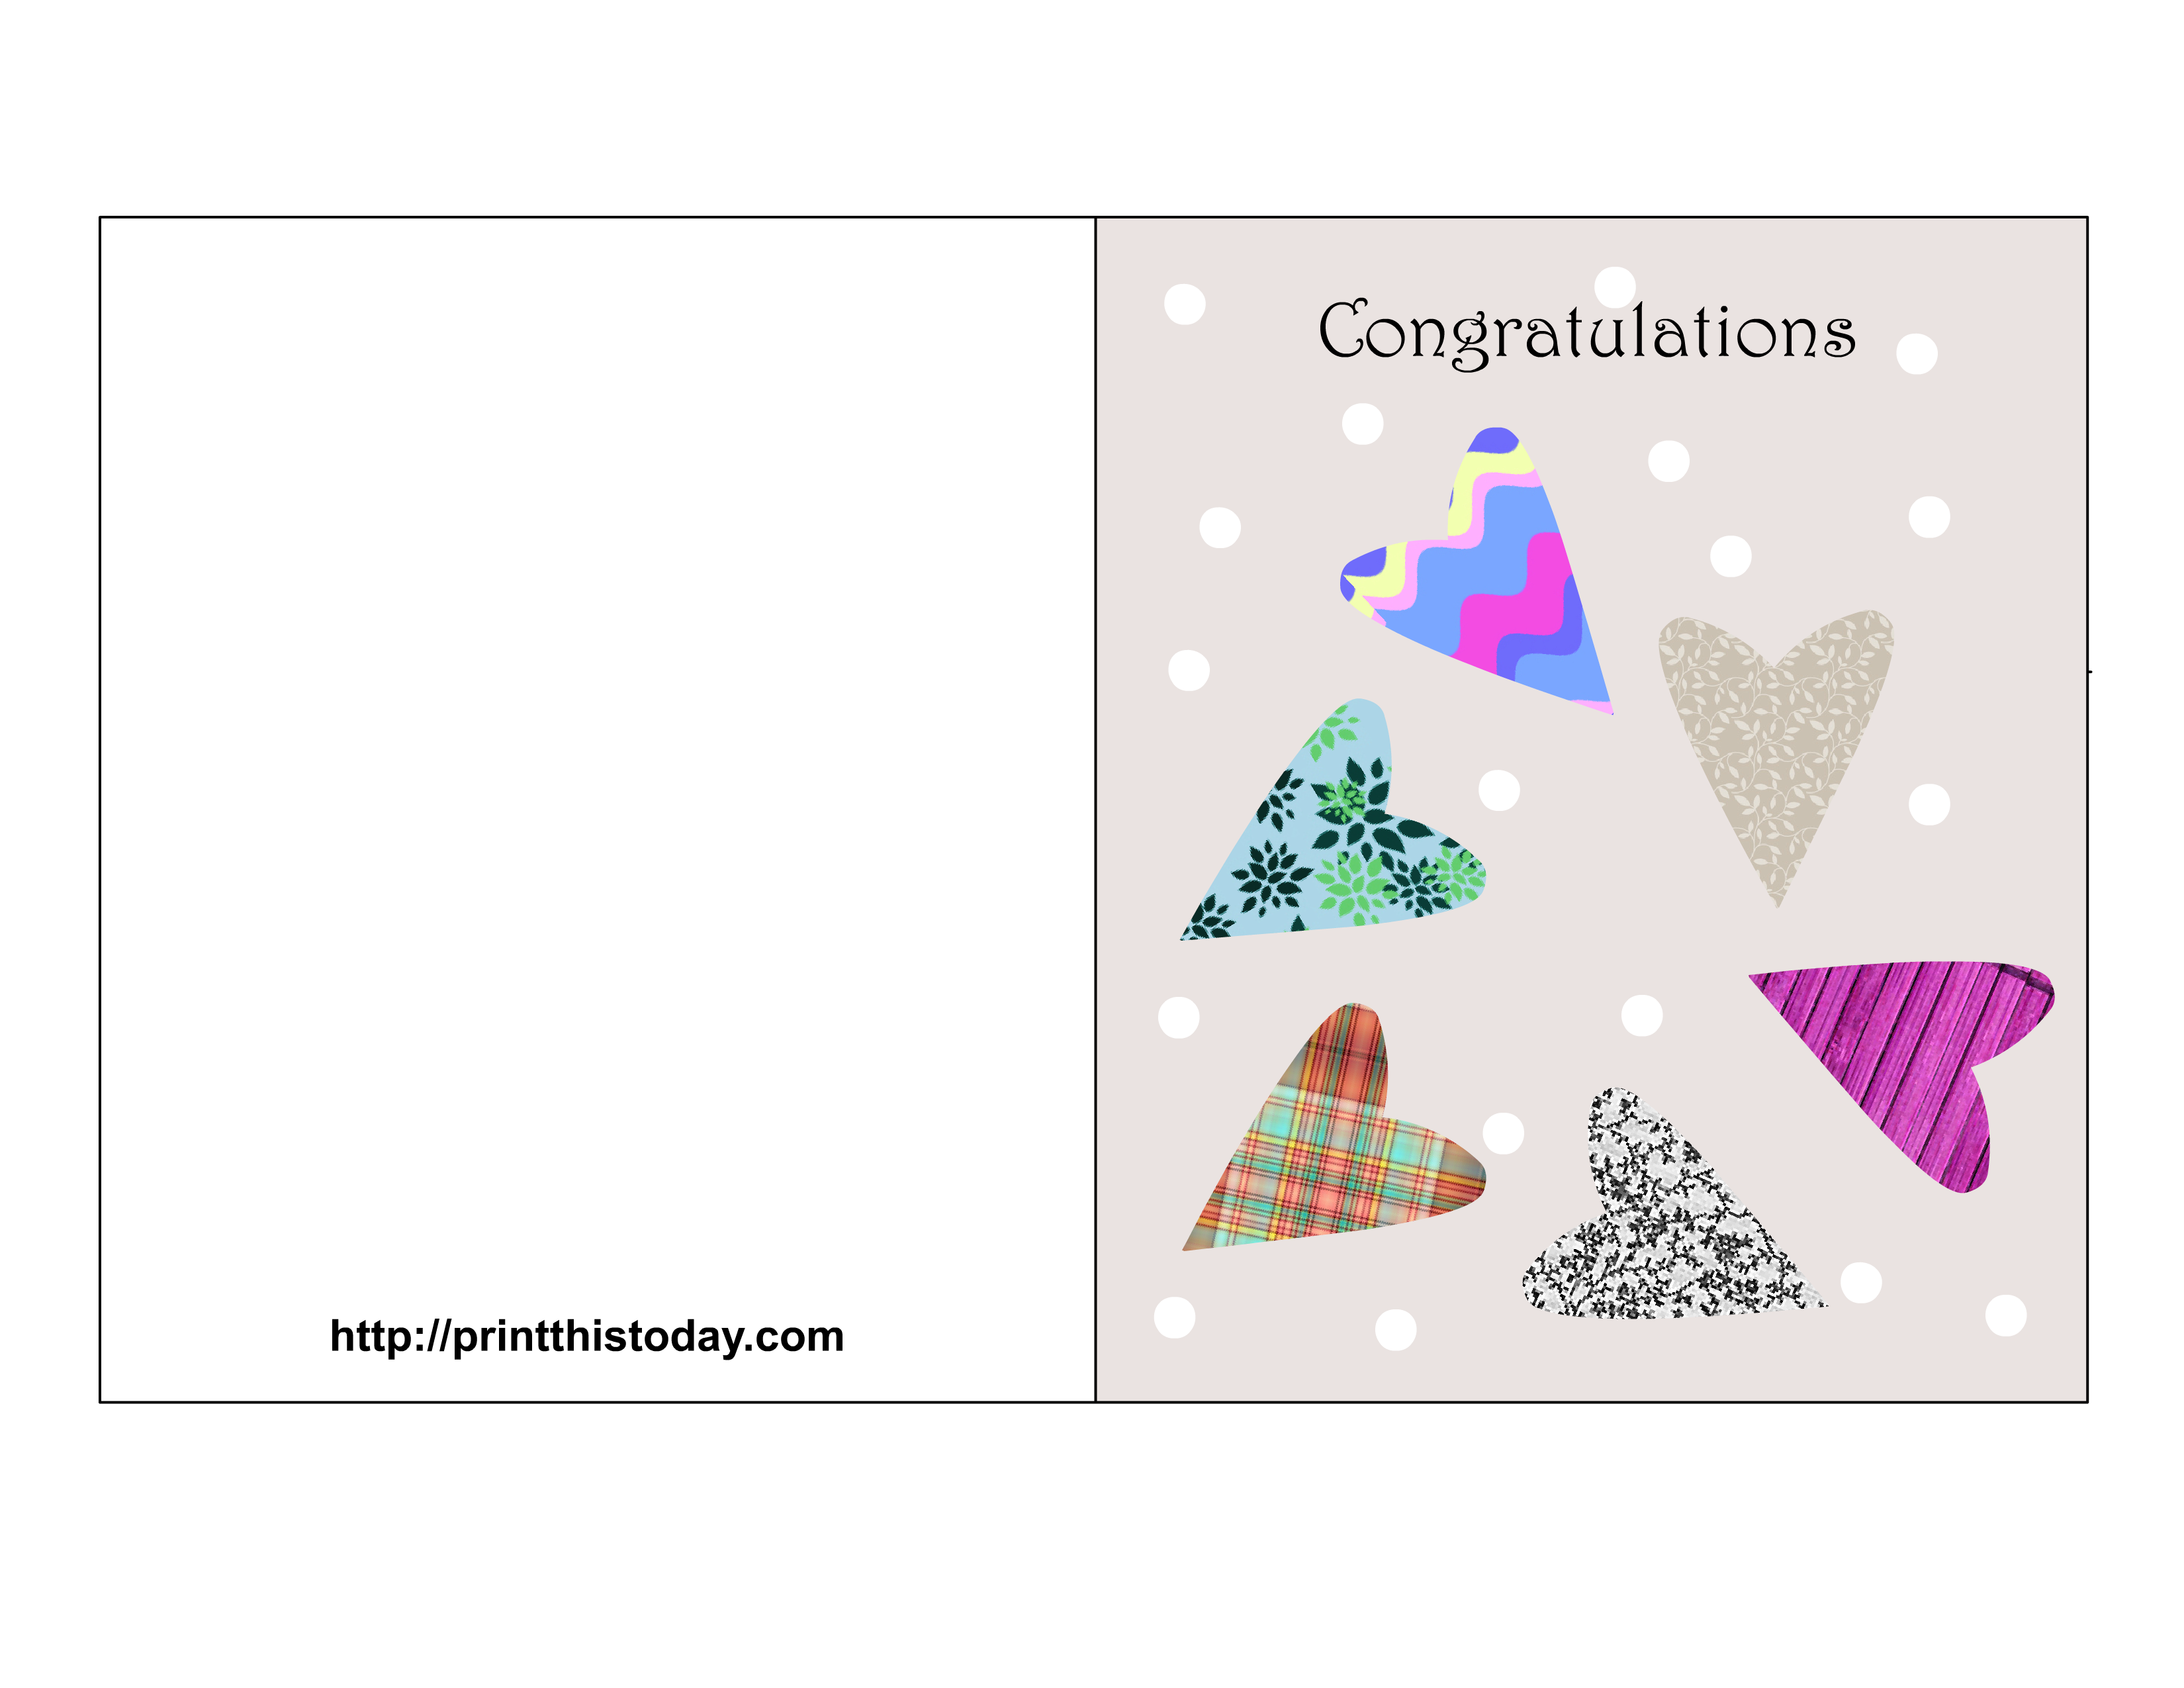 Free printable wishes on getting married cards: printthistoday.com/free-printable-wedding-congratulations-cards